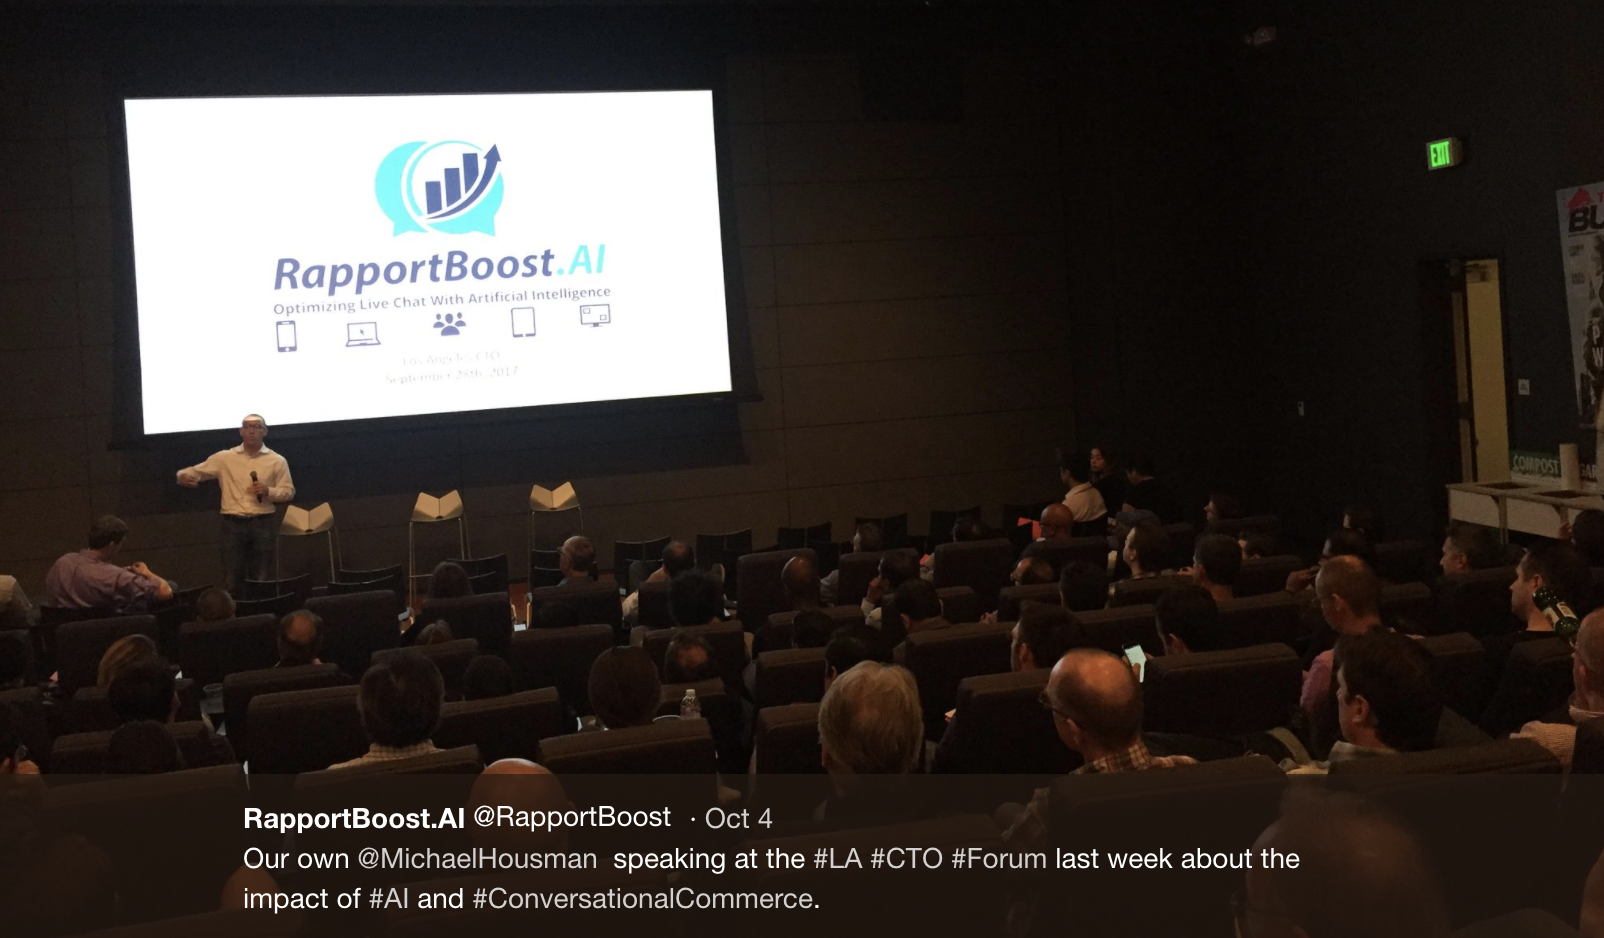 An image of Michael Housman of RapportBoost.AI presenting at a recent conference.